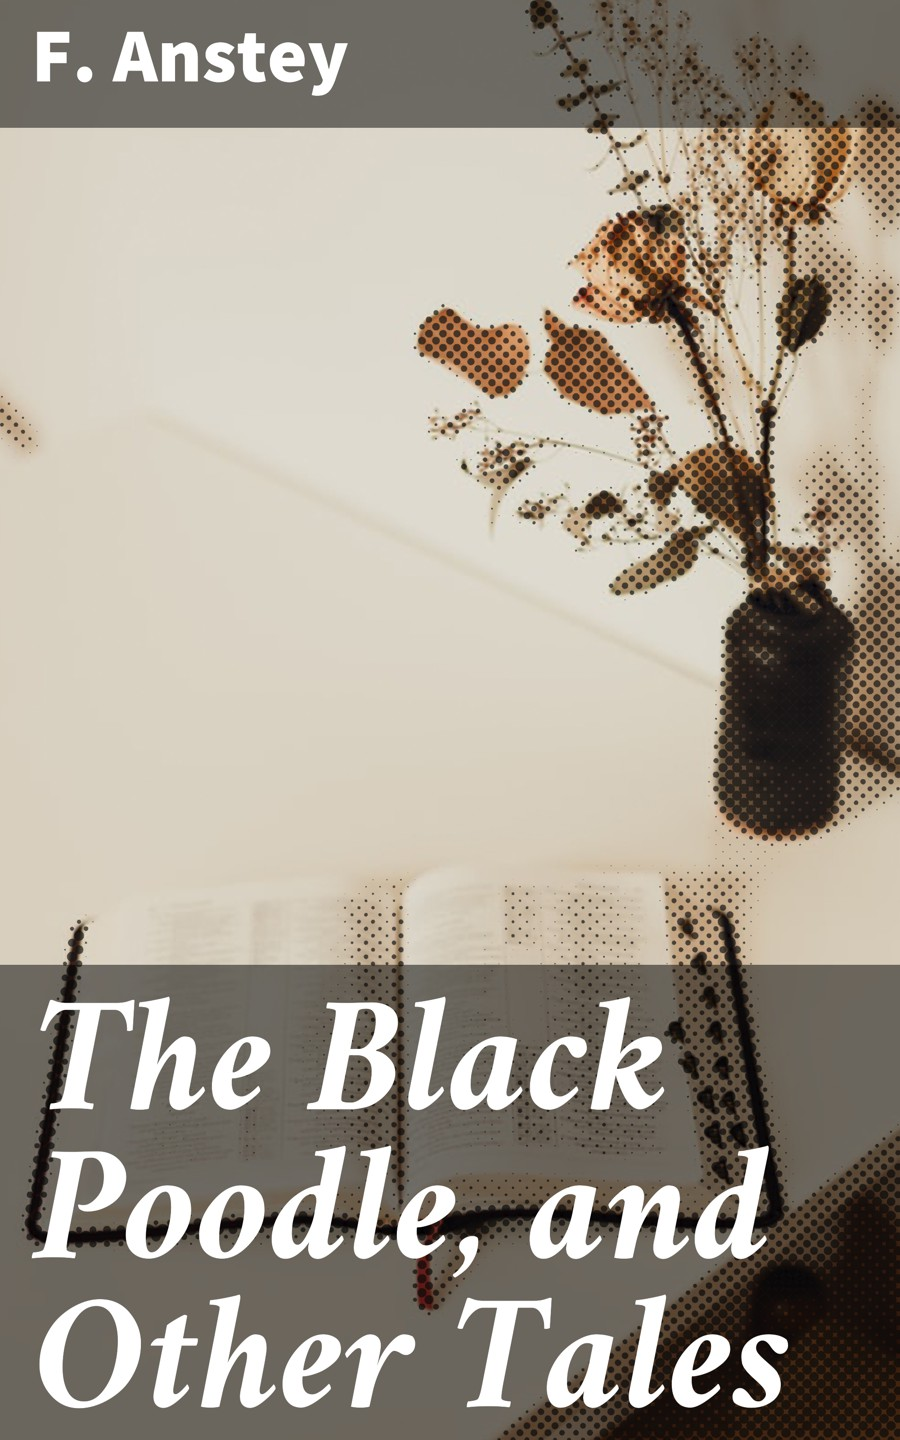 F. Anstey The Black Poodle, and Other Tales